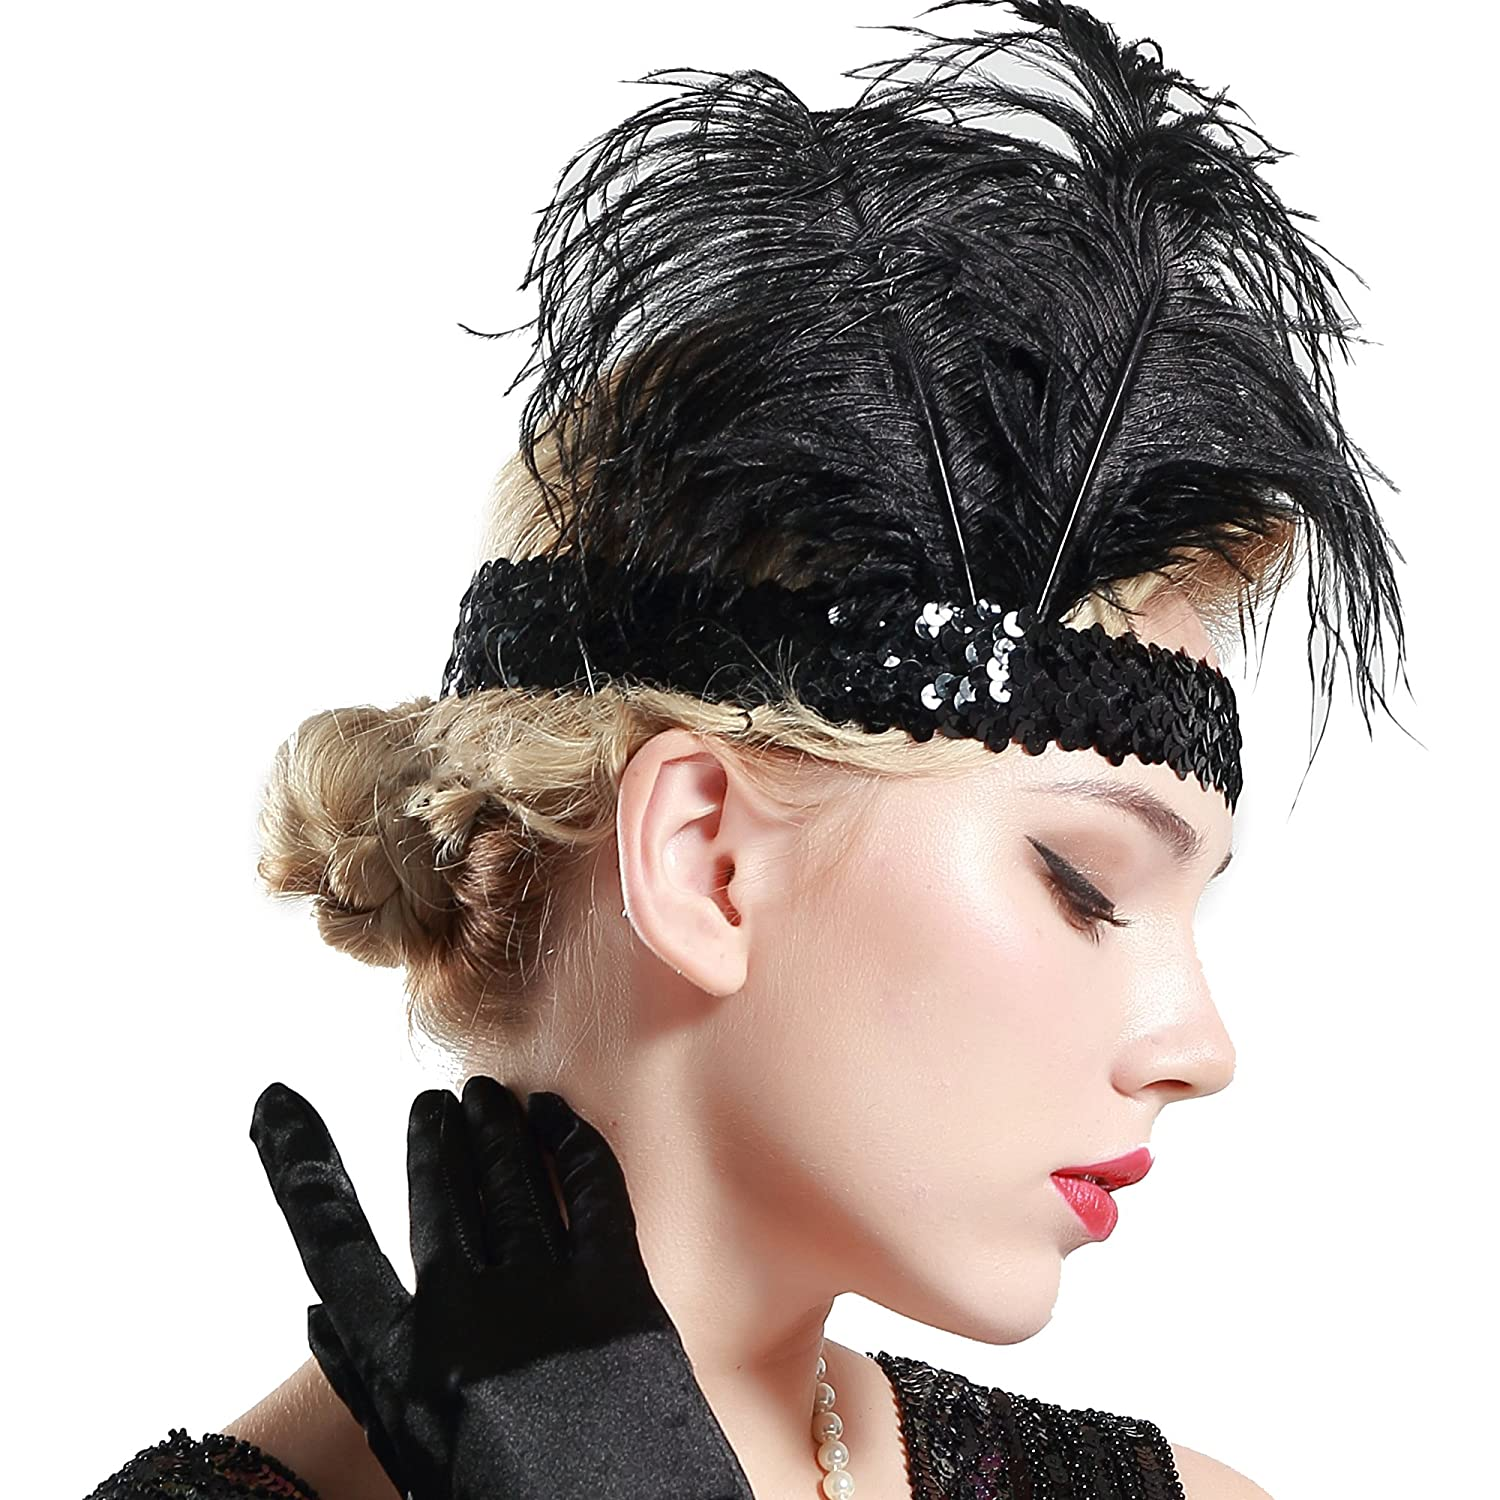 9291c4d2308 This 20s sequined gatsby headpiece is a big plus for your roaring 20 s  collection. Roaring 20s showgirl headband with feathers. Stunning vintage  1920s ...